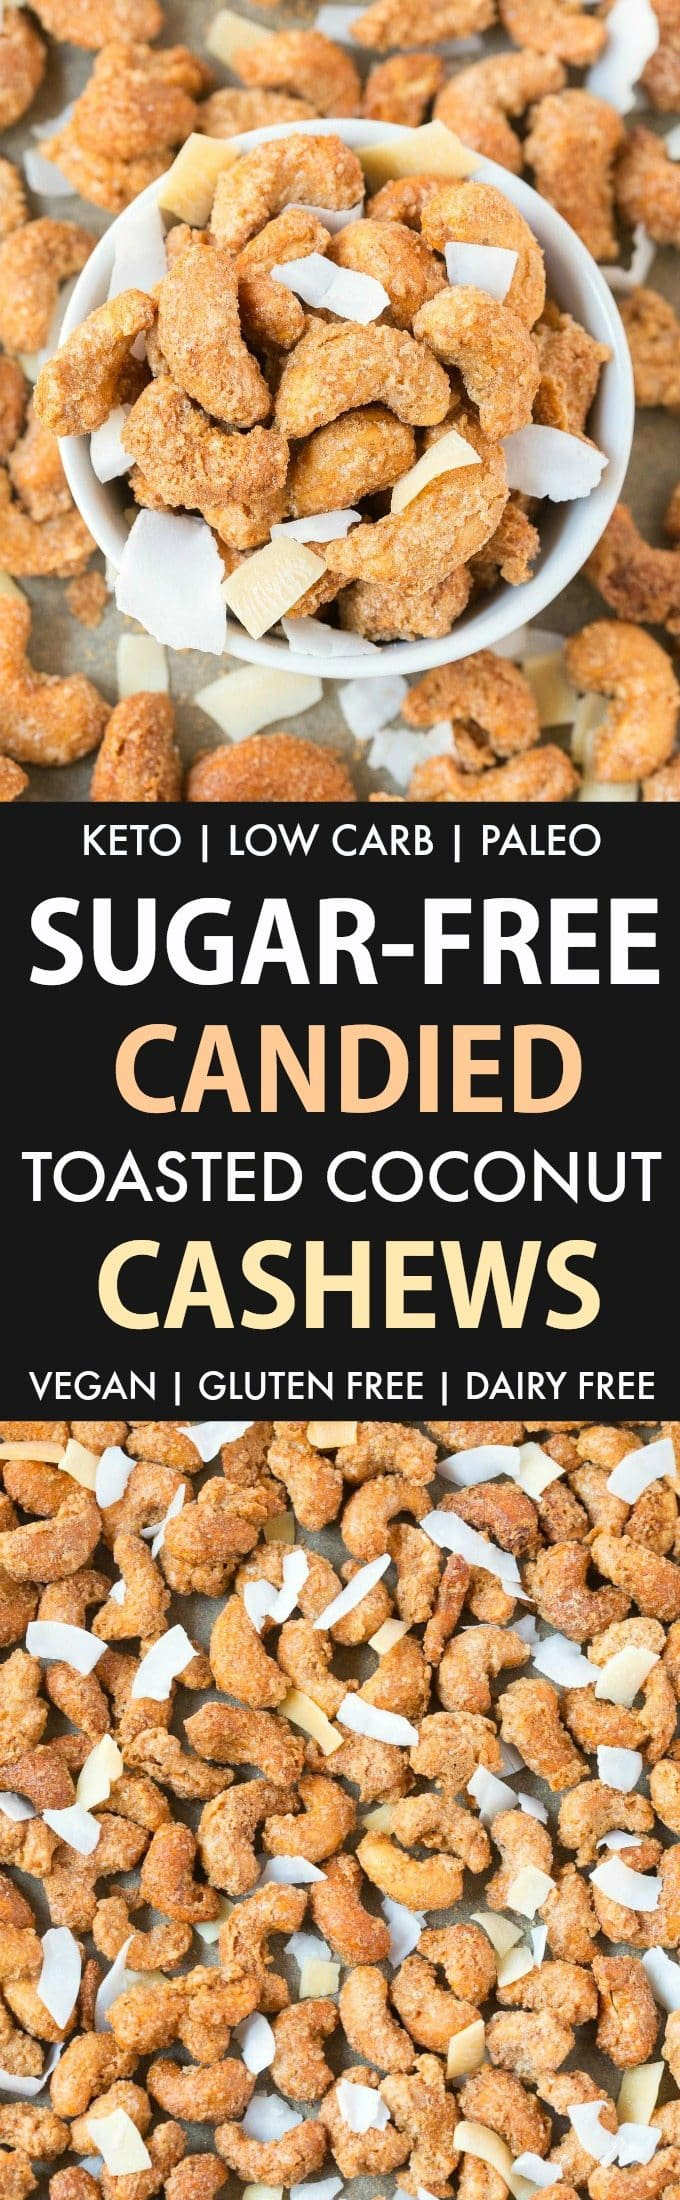 Easy Sugar Free Toasted Coconut Candied Cashews (Keto, Low Carb, Paleo, Oil-Free)- Stovetop made candied cashews and toasted coconut, made with no sugar or oil- Perfect for holidays, gifts and every day guilt-free snacking! {vegan, gluten free, dairy free recipe}- #cashews #sugarfree #lowcarb #cashewcoconut #lowcarbrecipes #ketodessert | Recipe on thebigmansworld.com